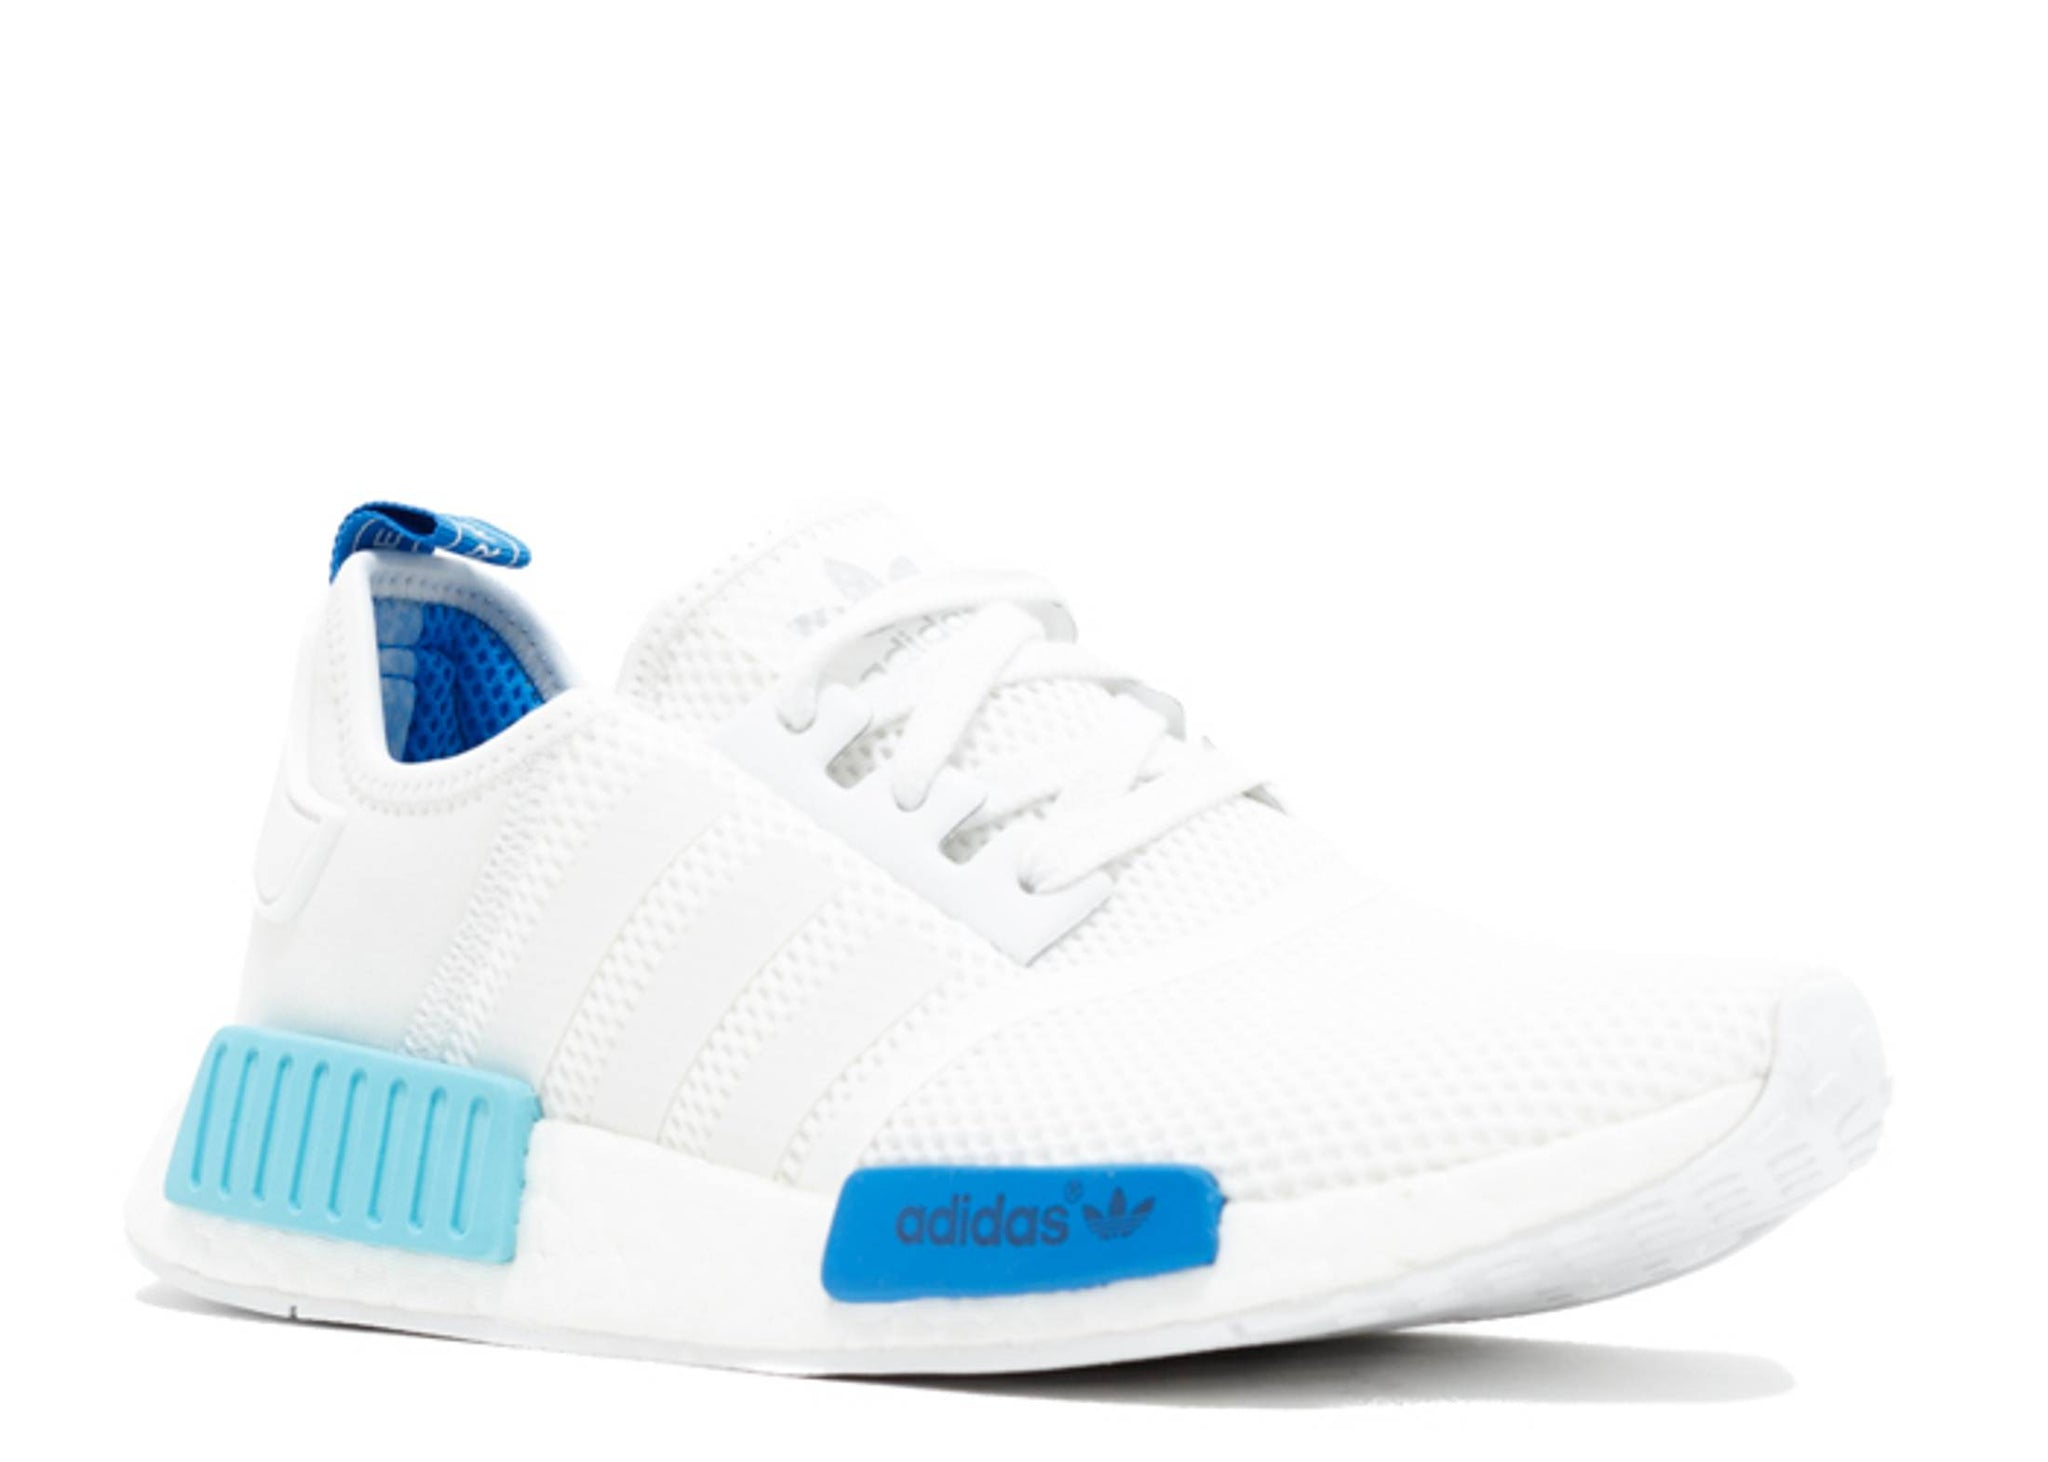 Adidas NMD R1 Runner W 'White/Blue'